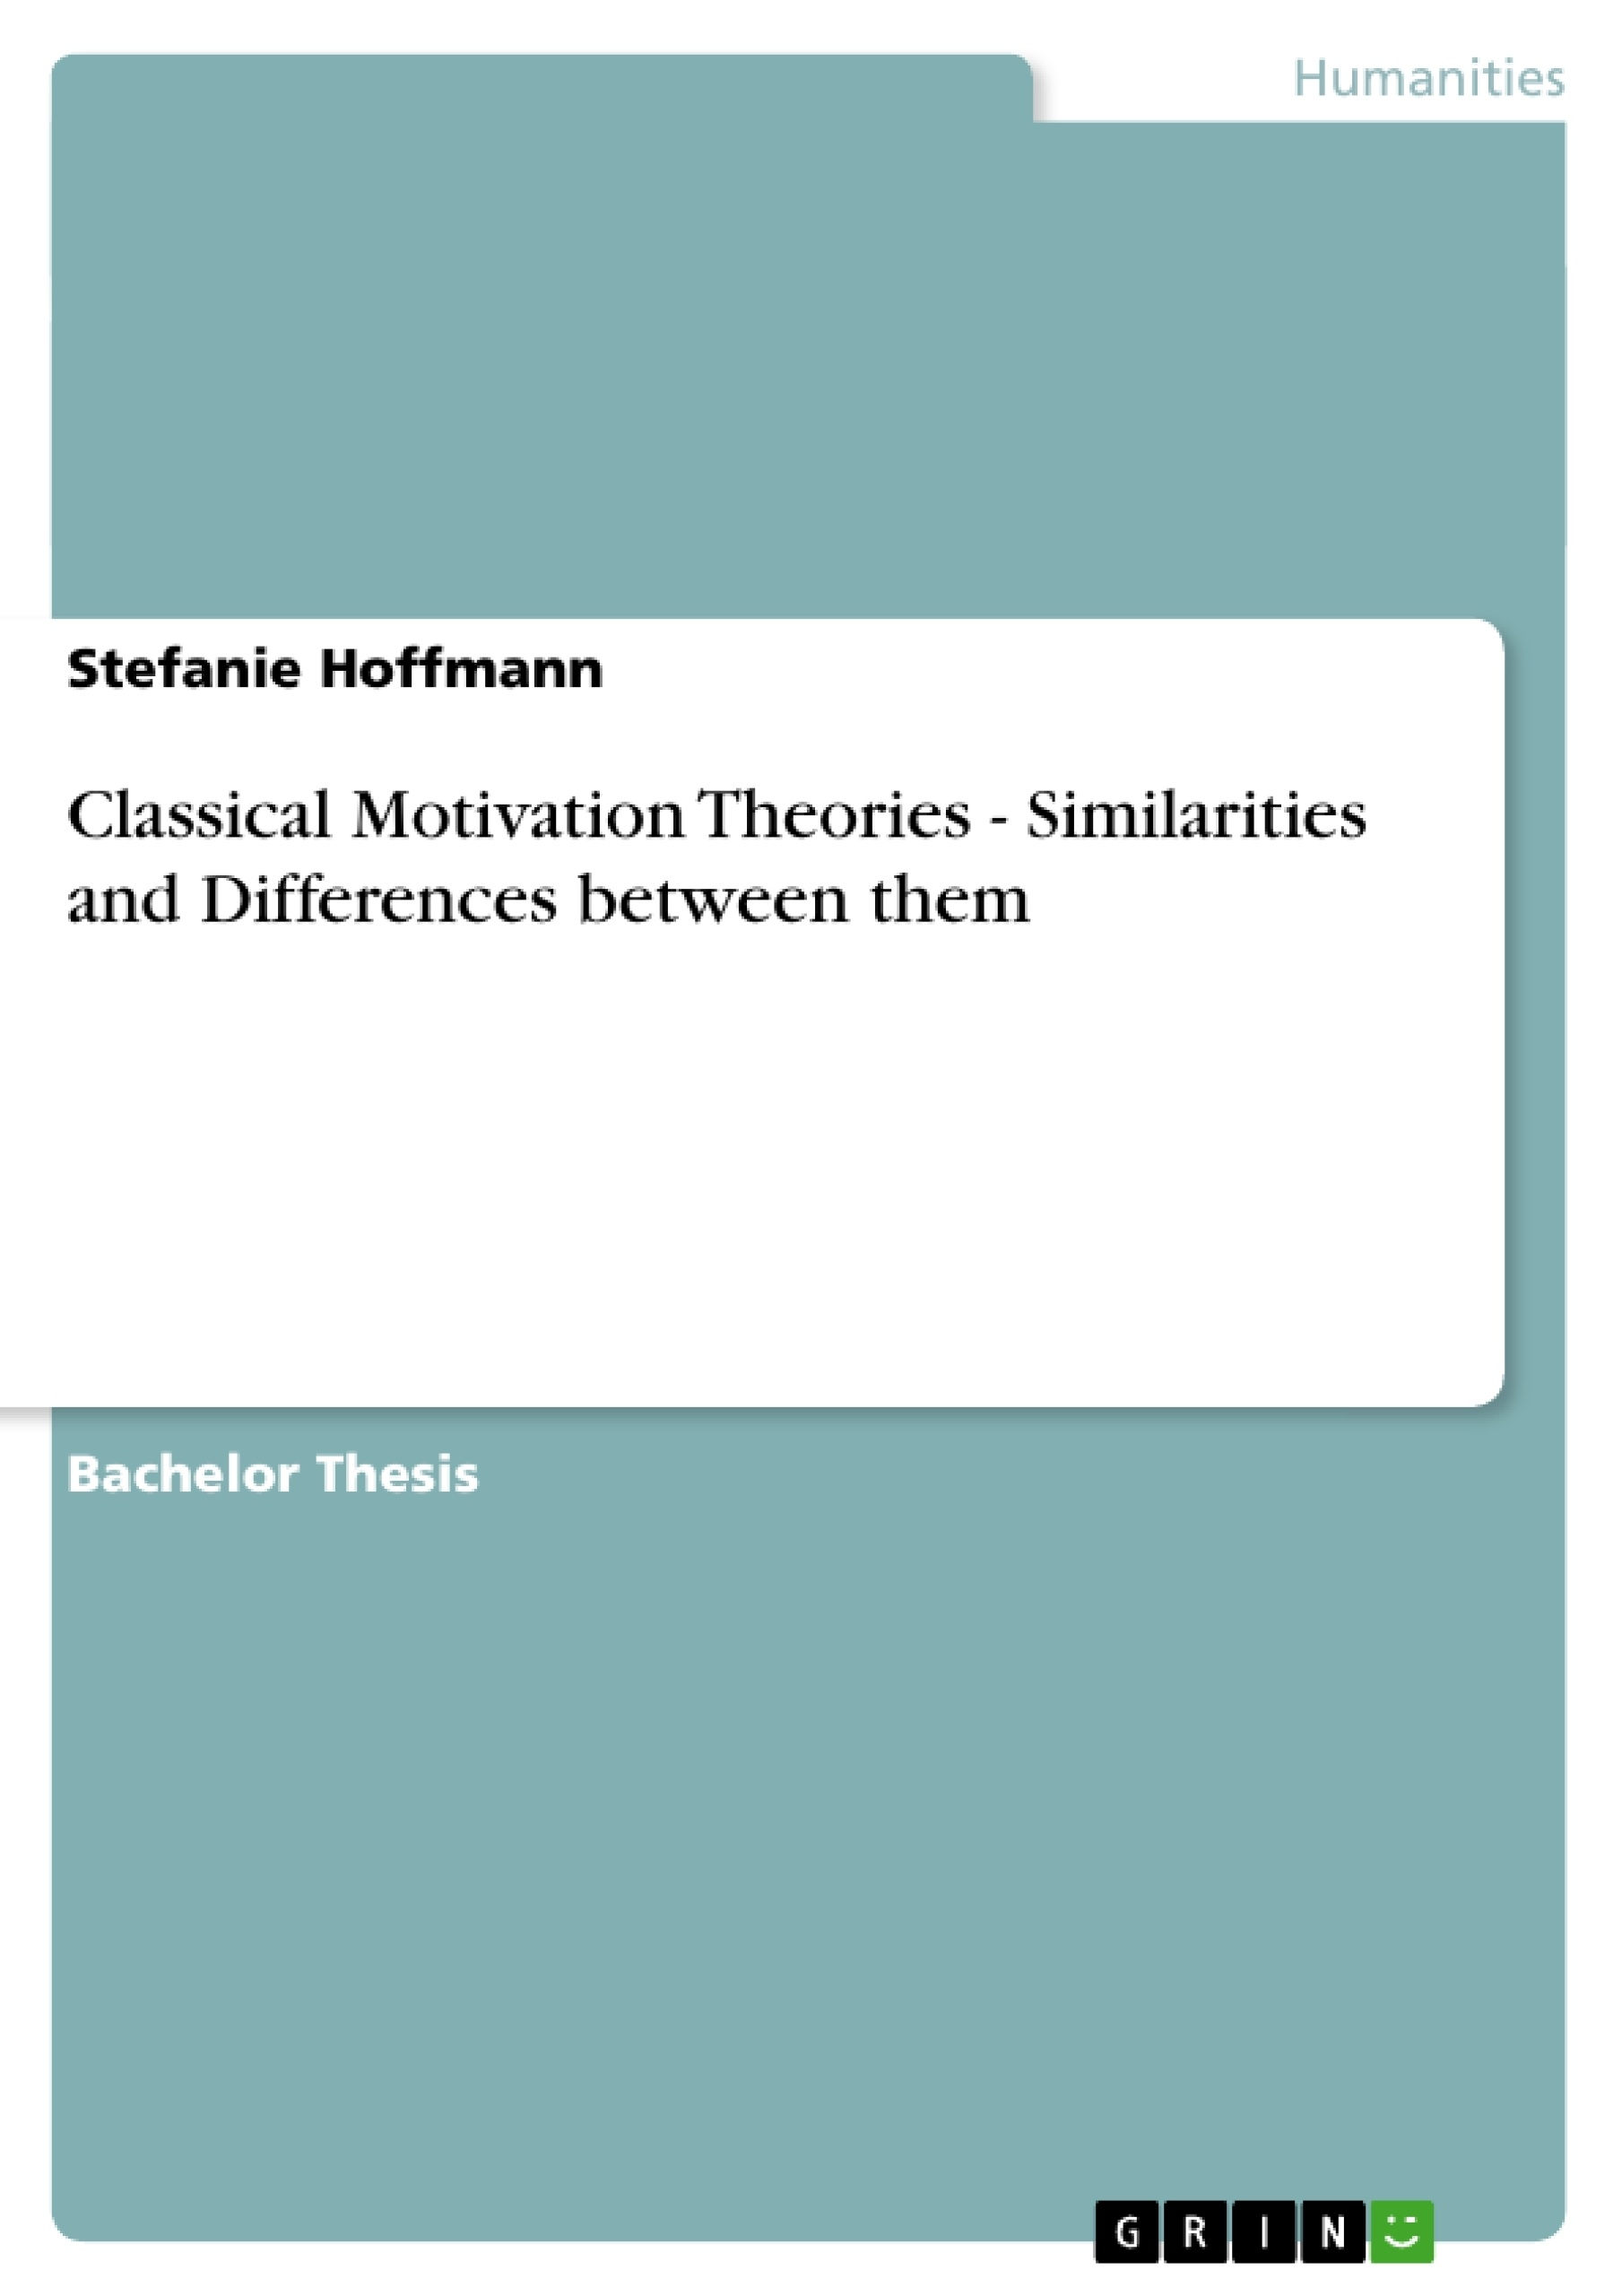 Title: Classical Motivation Theories - Similarities and Differences between them